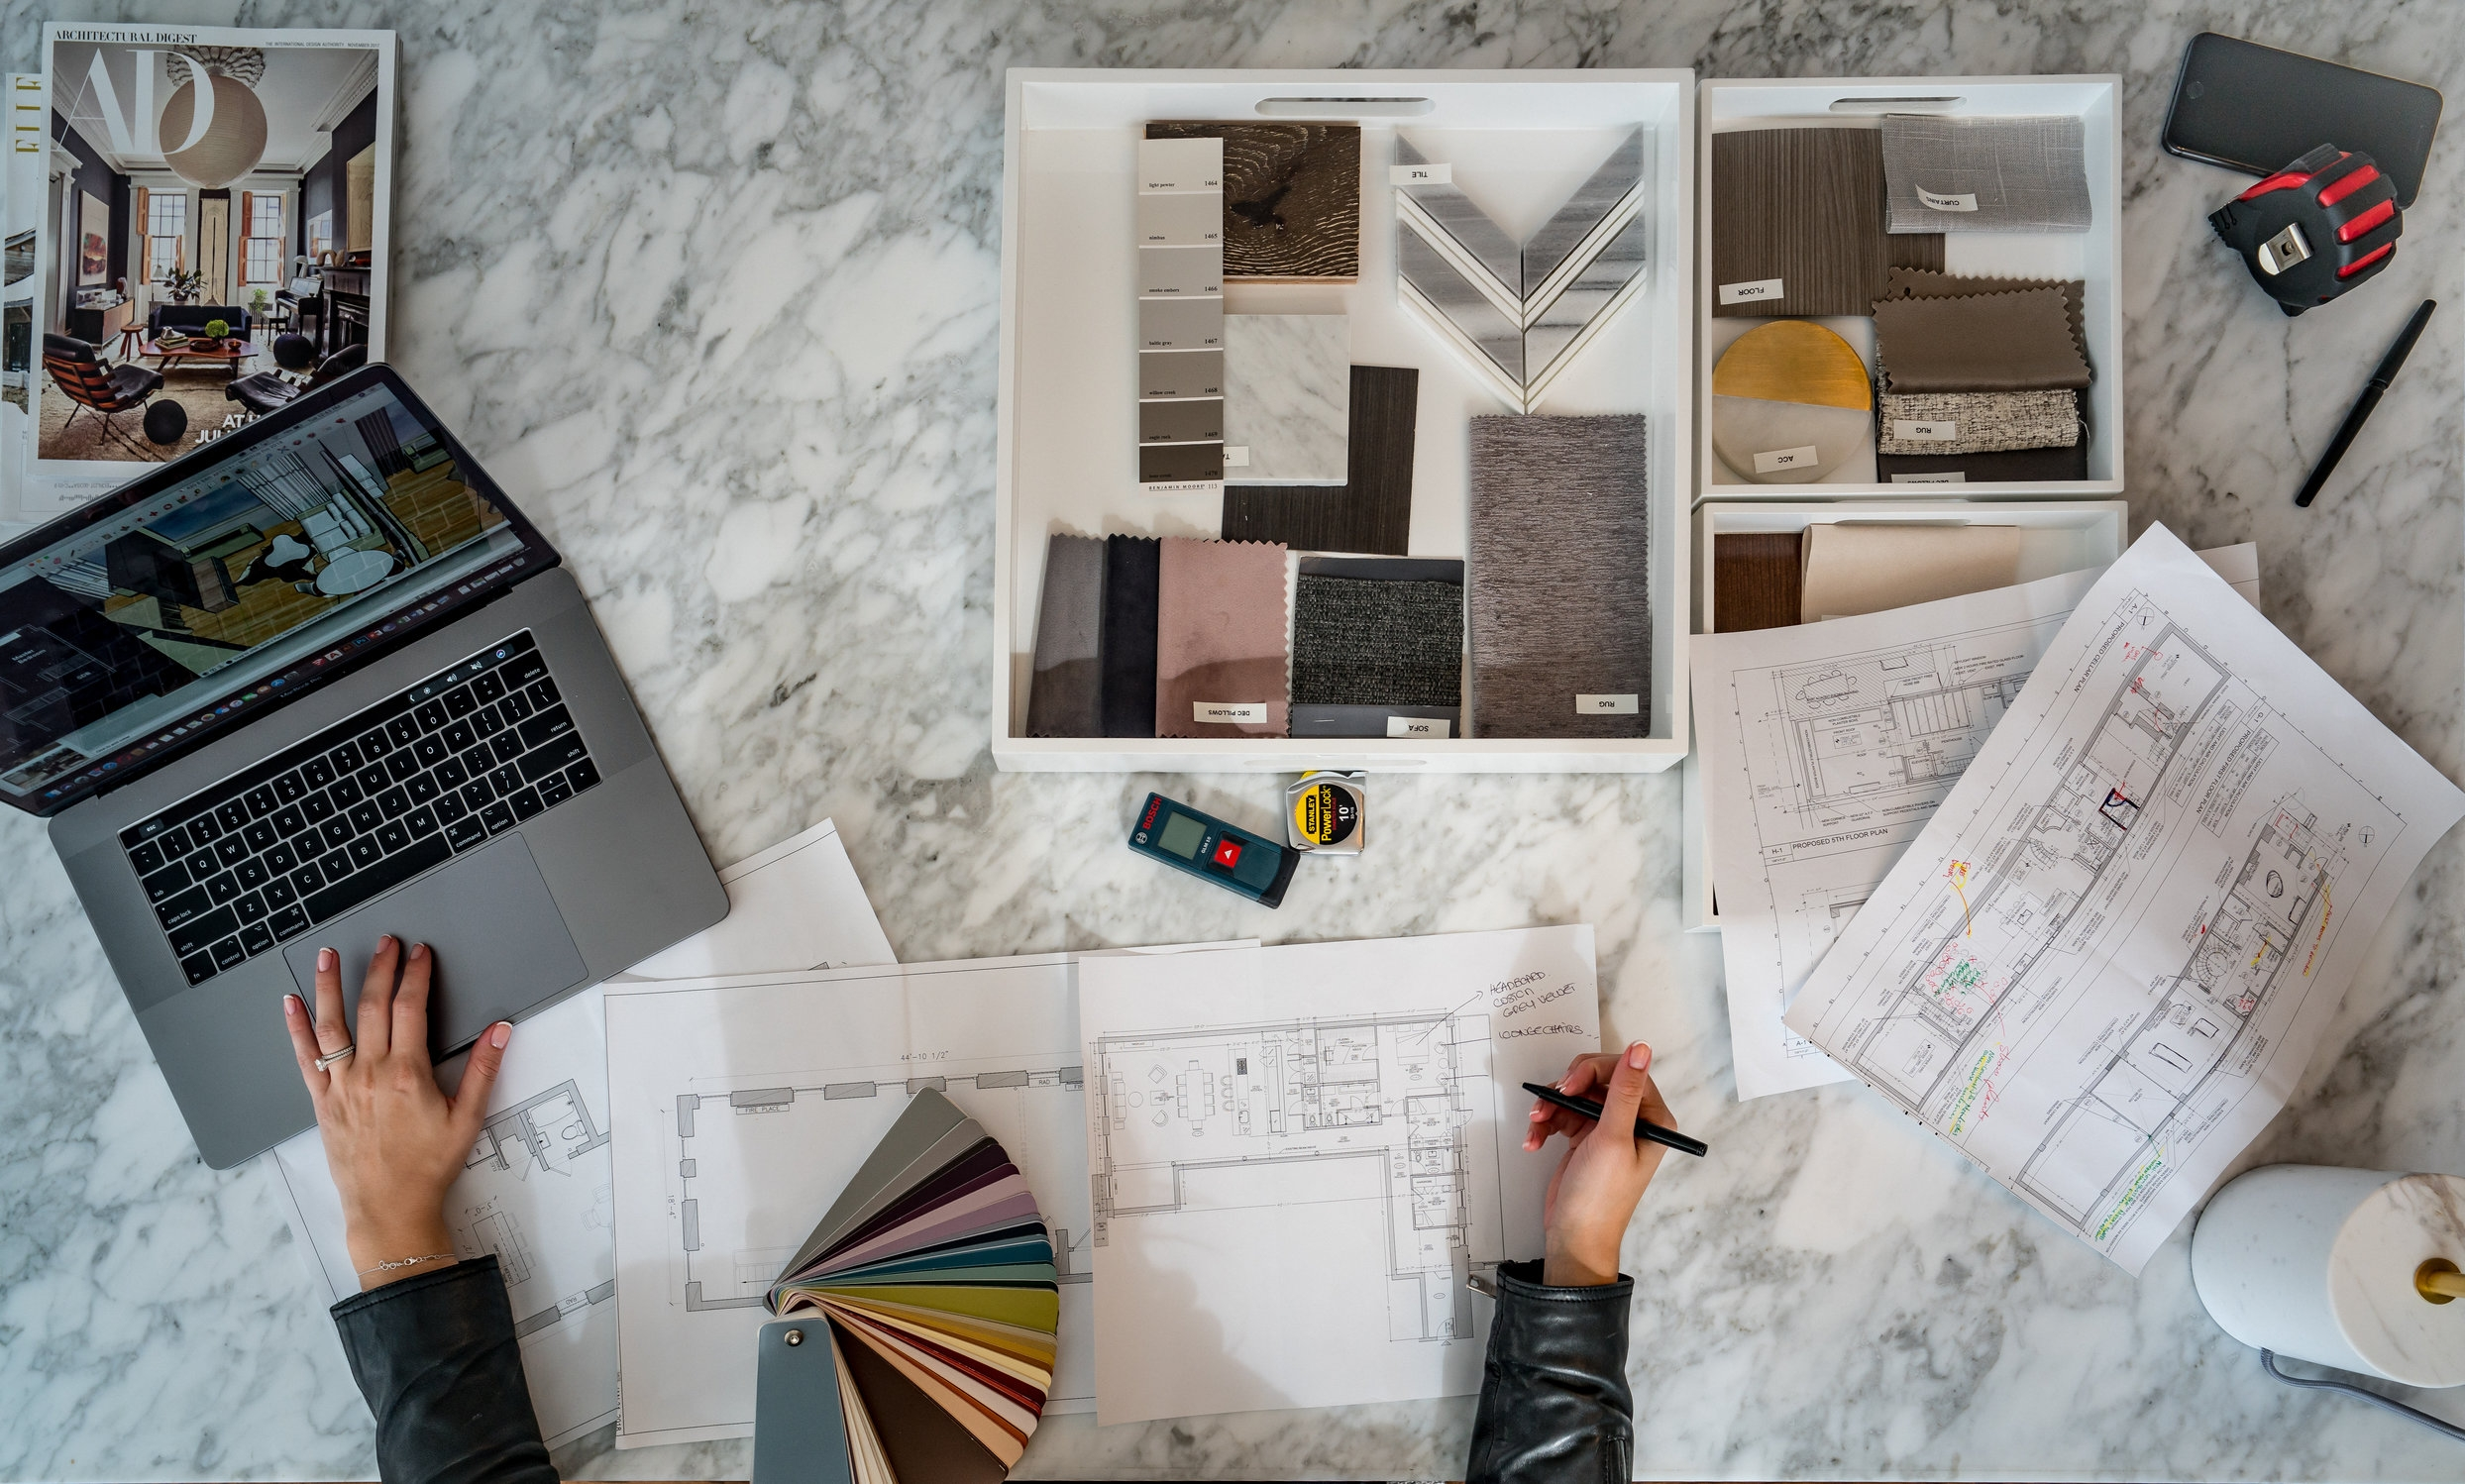 2Analyze& Evaluate - Our discovery process gives us all we need to analyze and evaluate the design possibilities for your home and create a custom proposal to meet our client's needs. All our design ideas are organized into a presentation that offers different furniture options, lighting, materials, fabrics and colors. Our 3 Dimensional Floor-plan will create a realistic feel and connect all the design elements together. It will definitely give our clients a better idea of their new apartment.